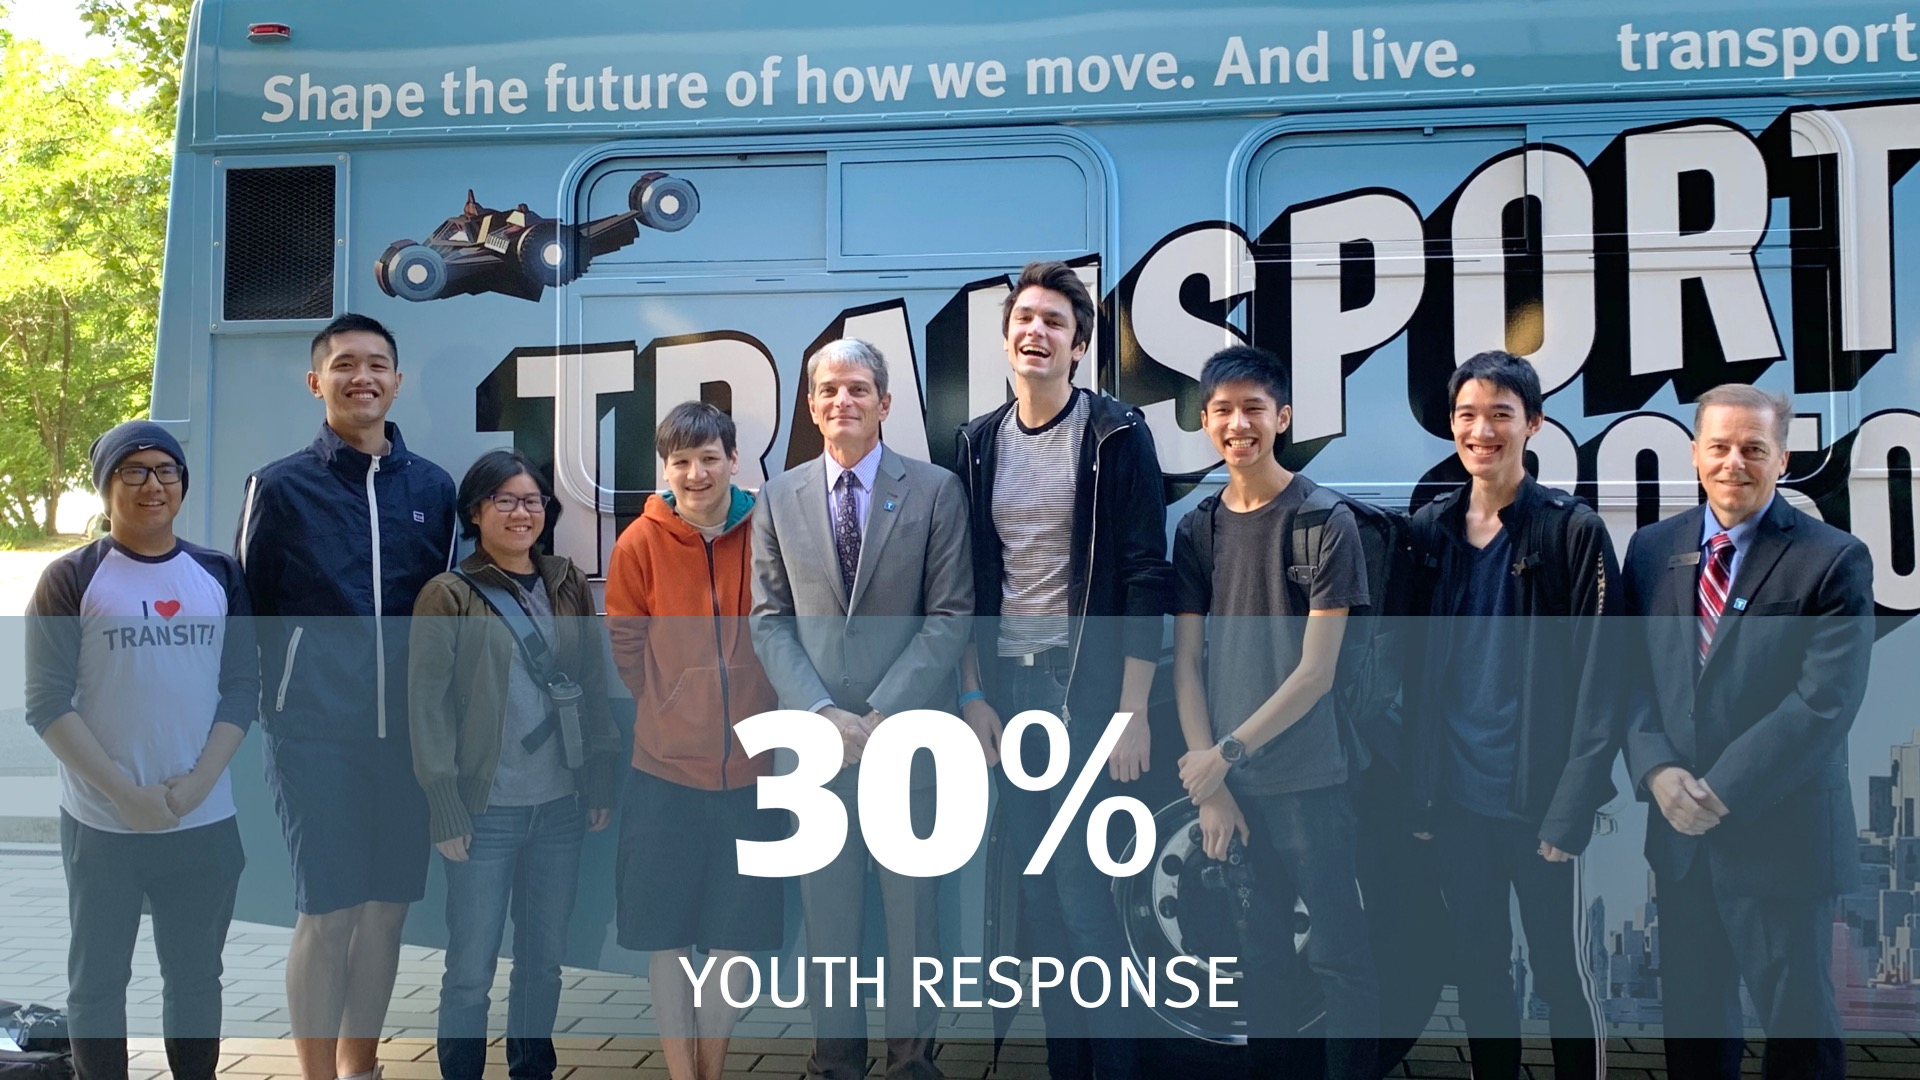 30% youth response